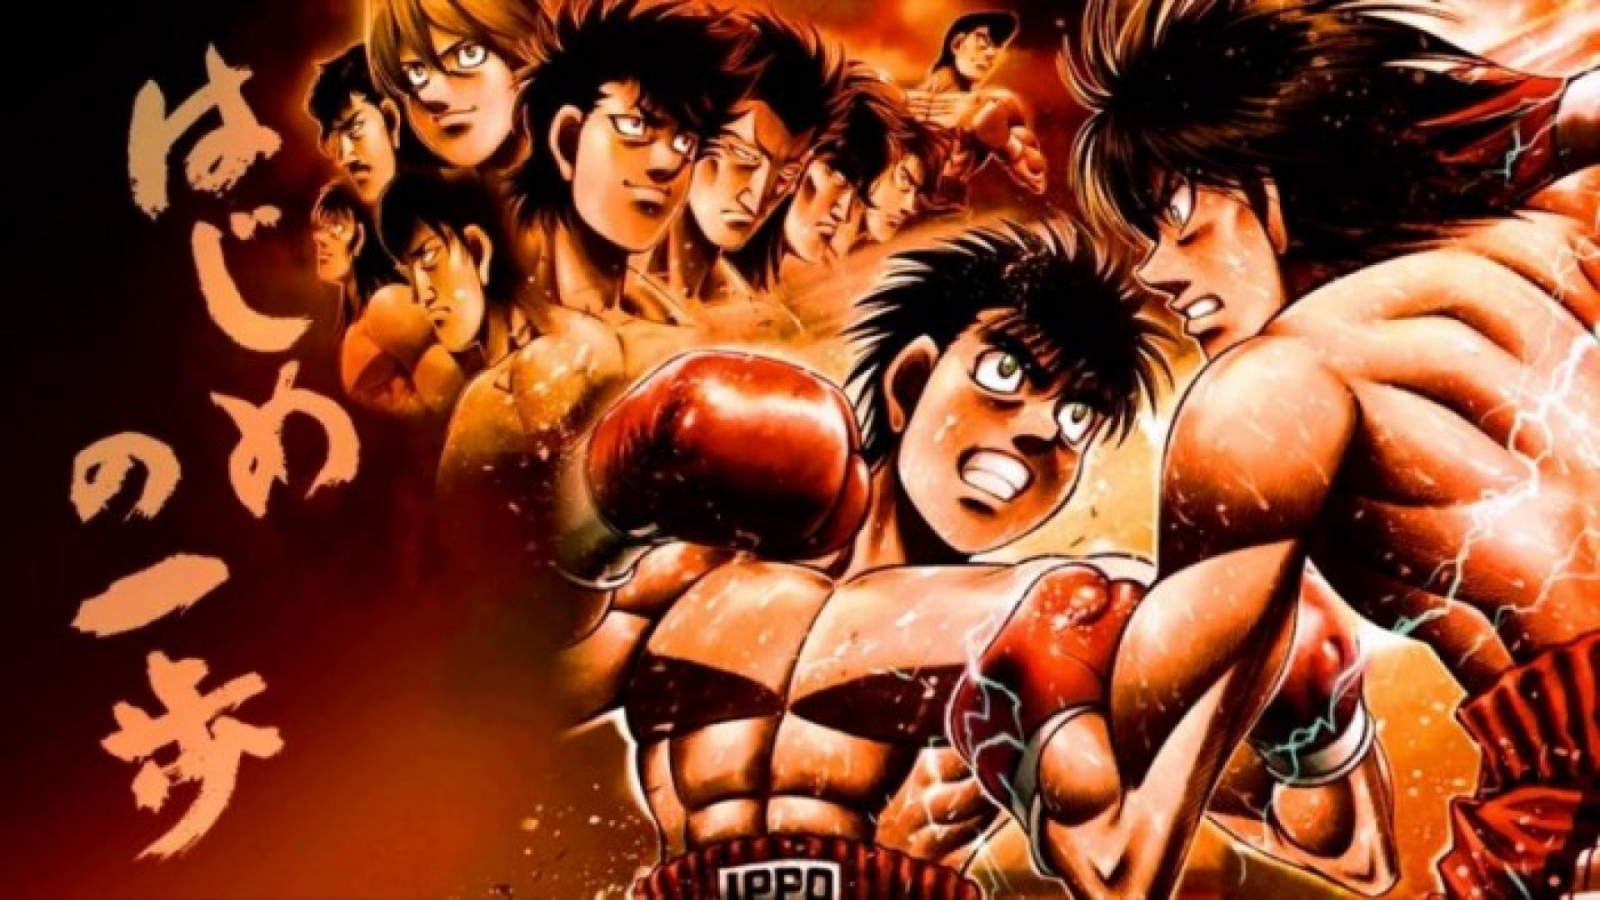 Free Download Hajime No Ippo Wallpapers 41wl9wf 700x394 4usky